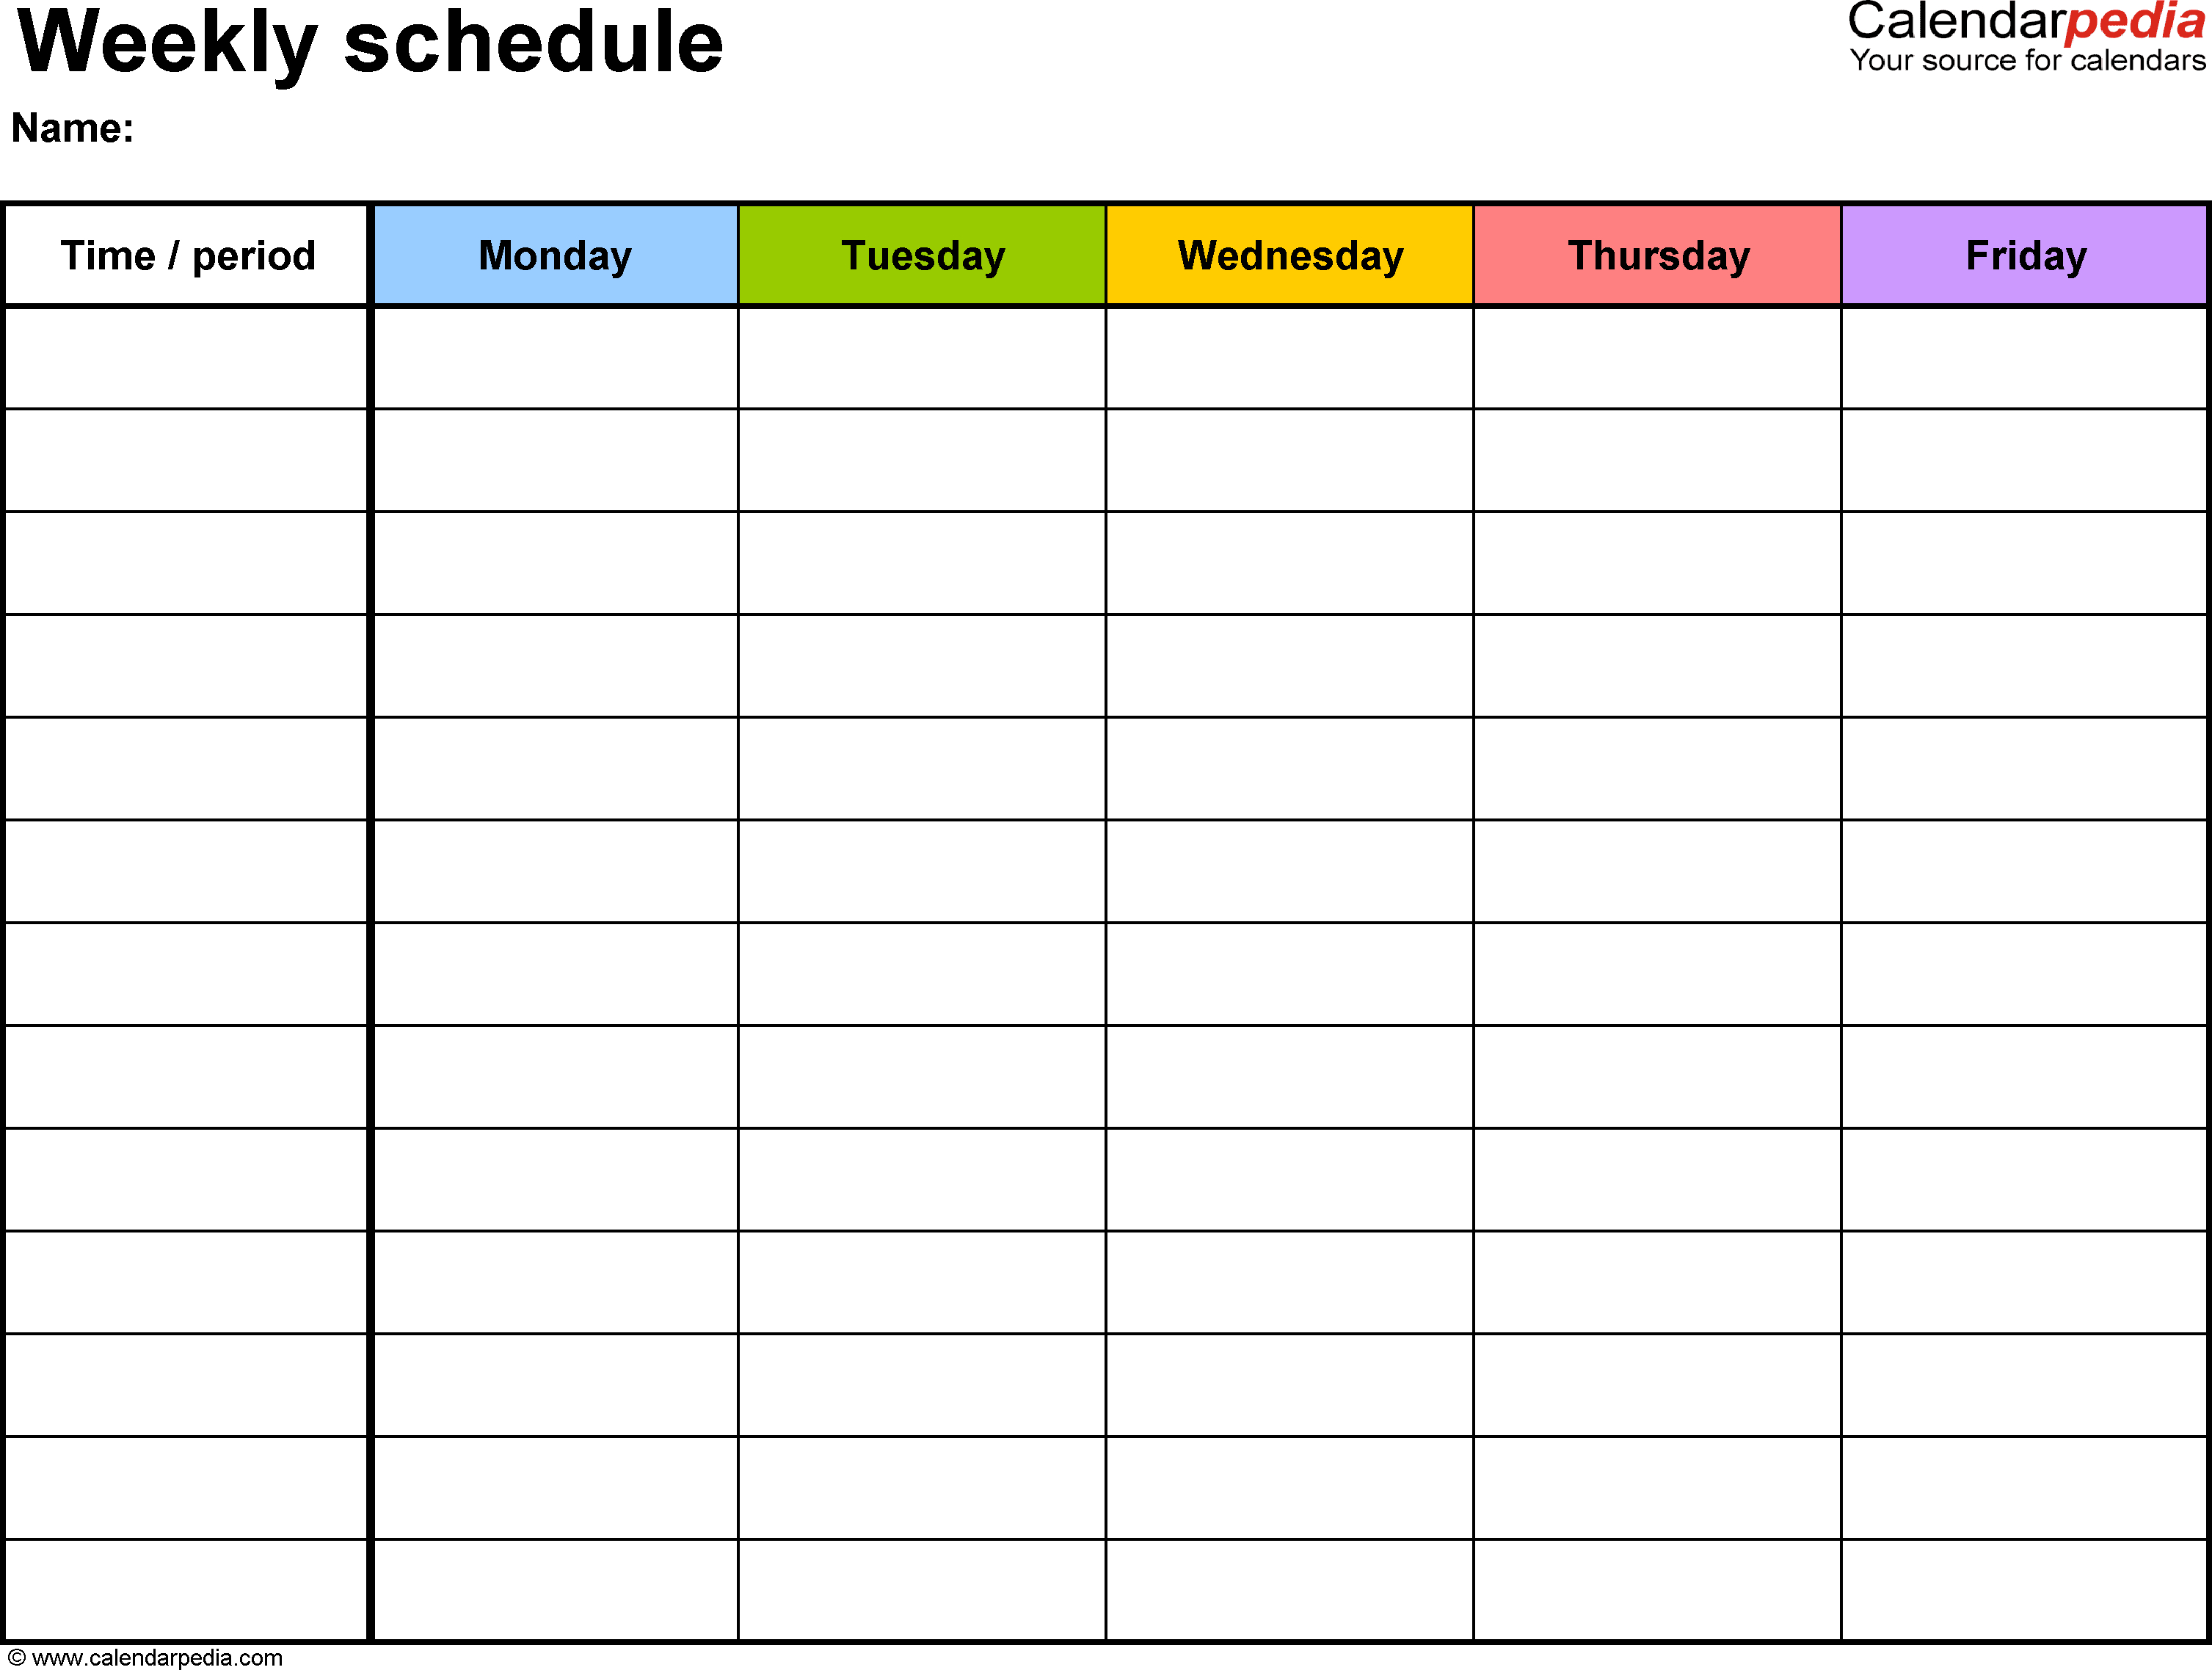 Free Weekly Schedule Templates For Word   18 Templates To Employee Weekly Schedule Template